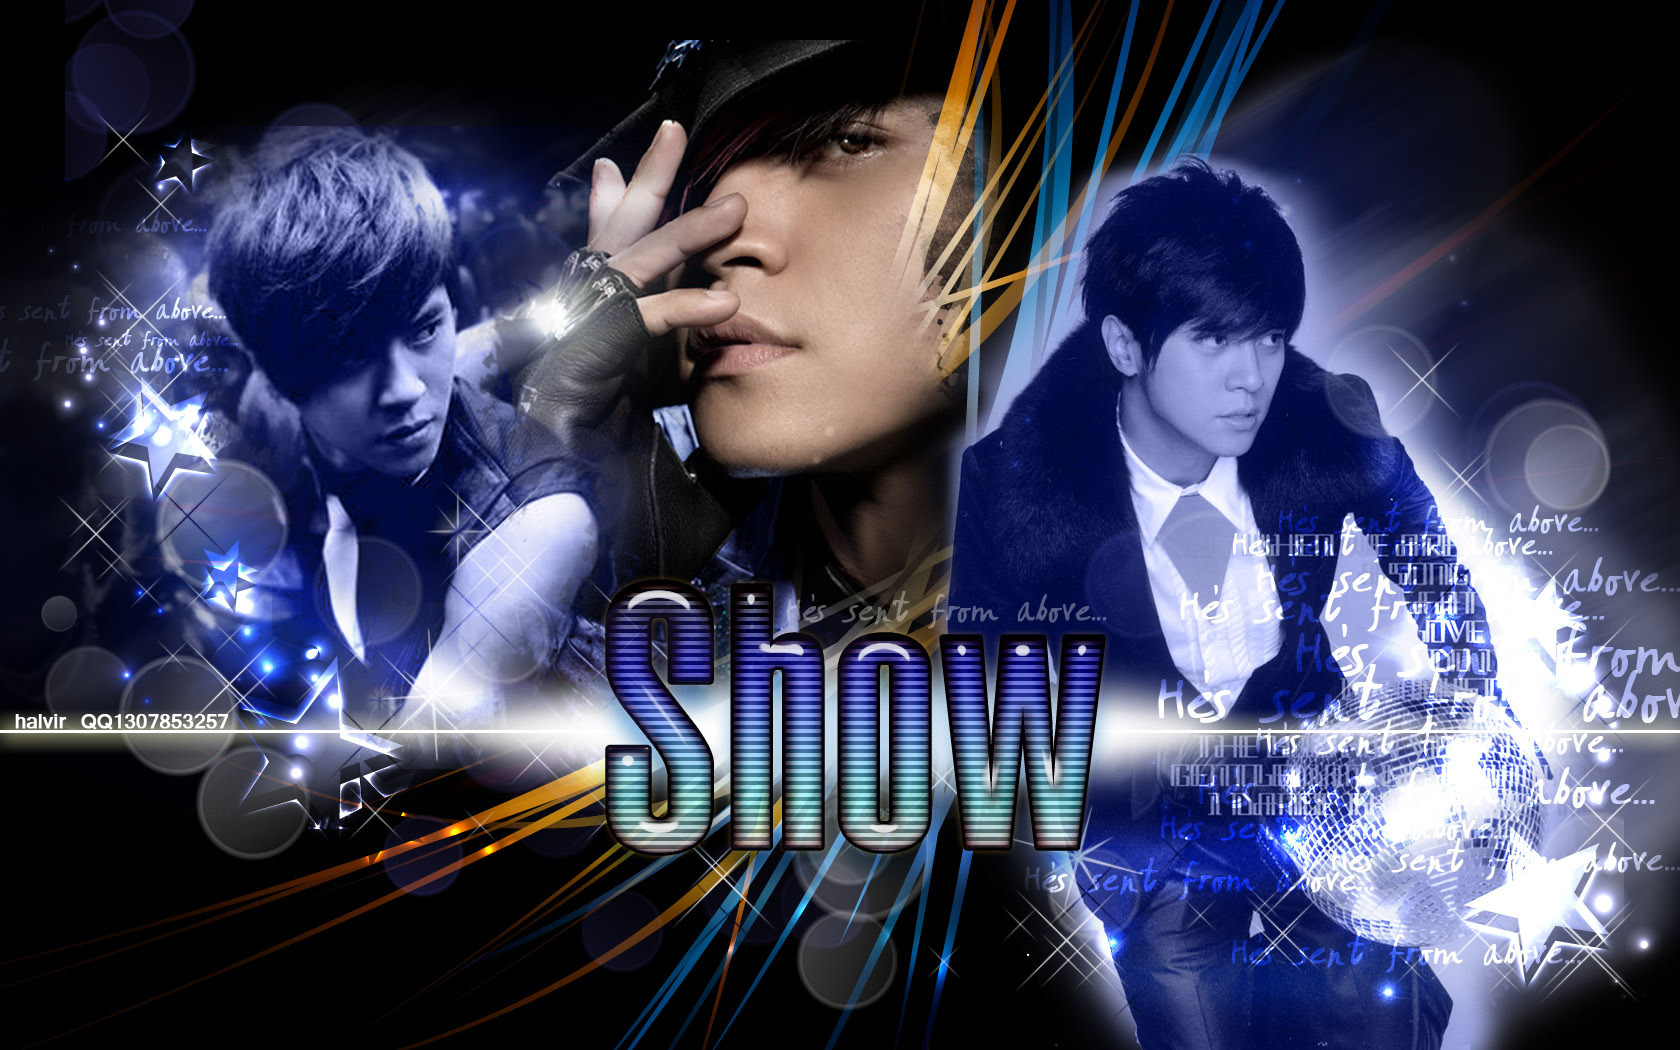 wallpaper Show Luo - Show Luo Wallpaper (17172084) - Fanpop: fanpop.com/clubs/show-luo/images/17172084/title/wallpaper-show-luo...